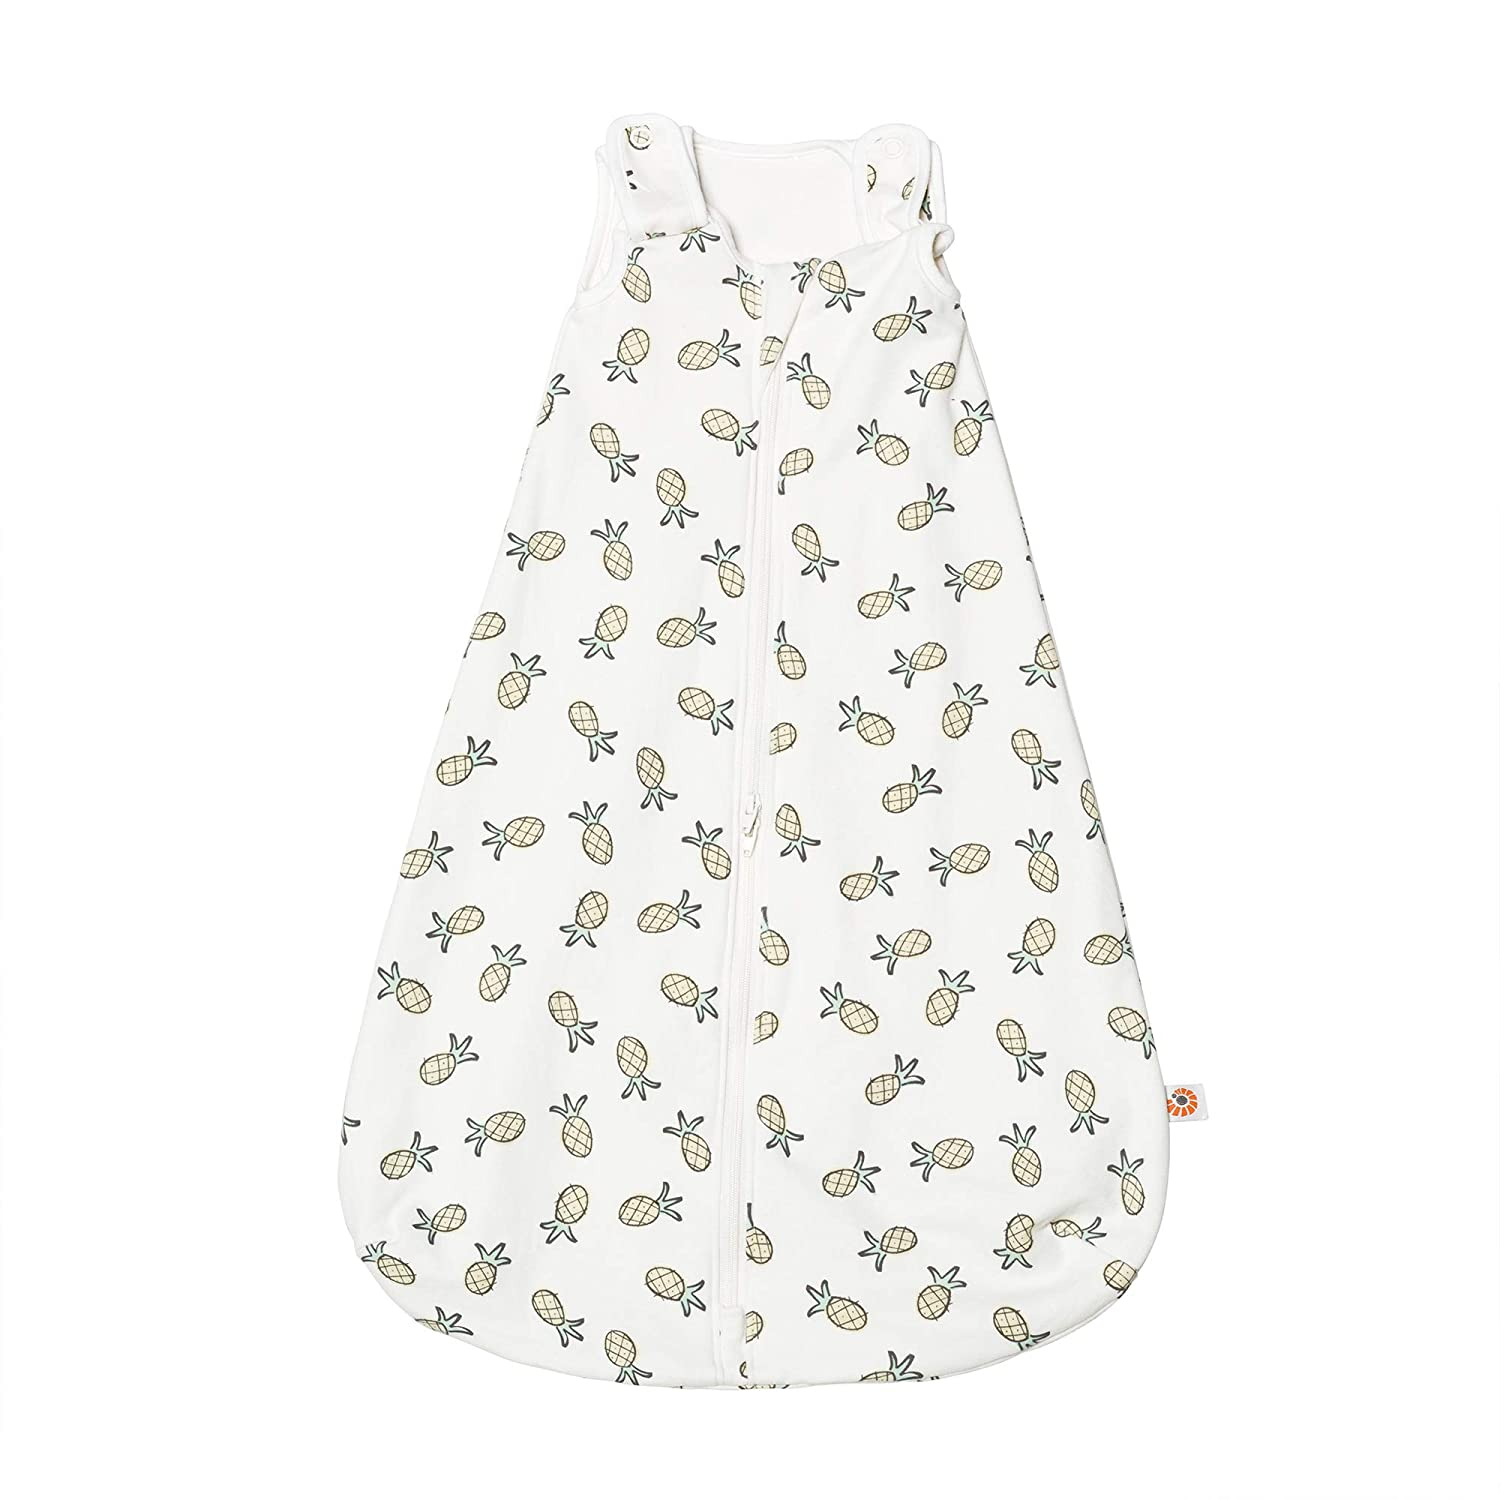 Ergobaby A surprise price is realized Sleeping Bag SEAL limited product Premium Pineapples 1.0 Cotton Tog